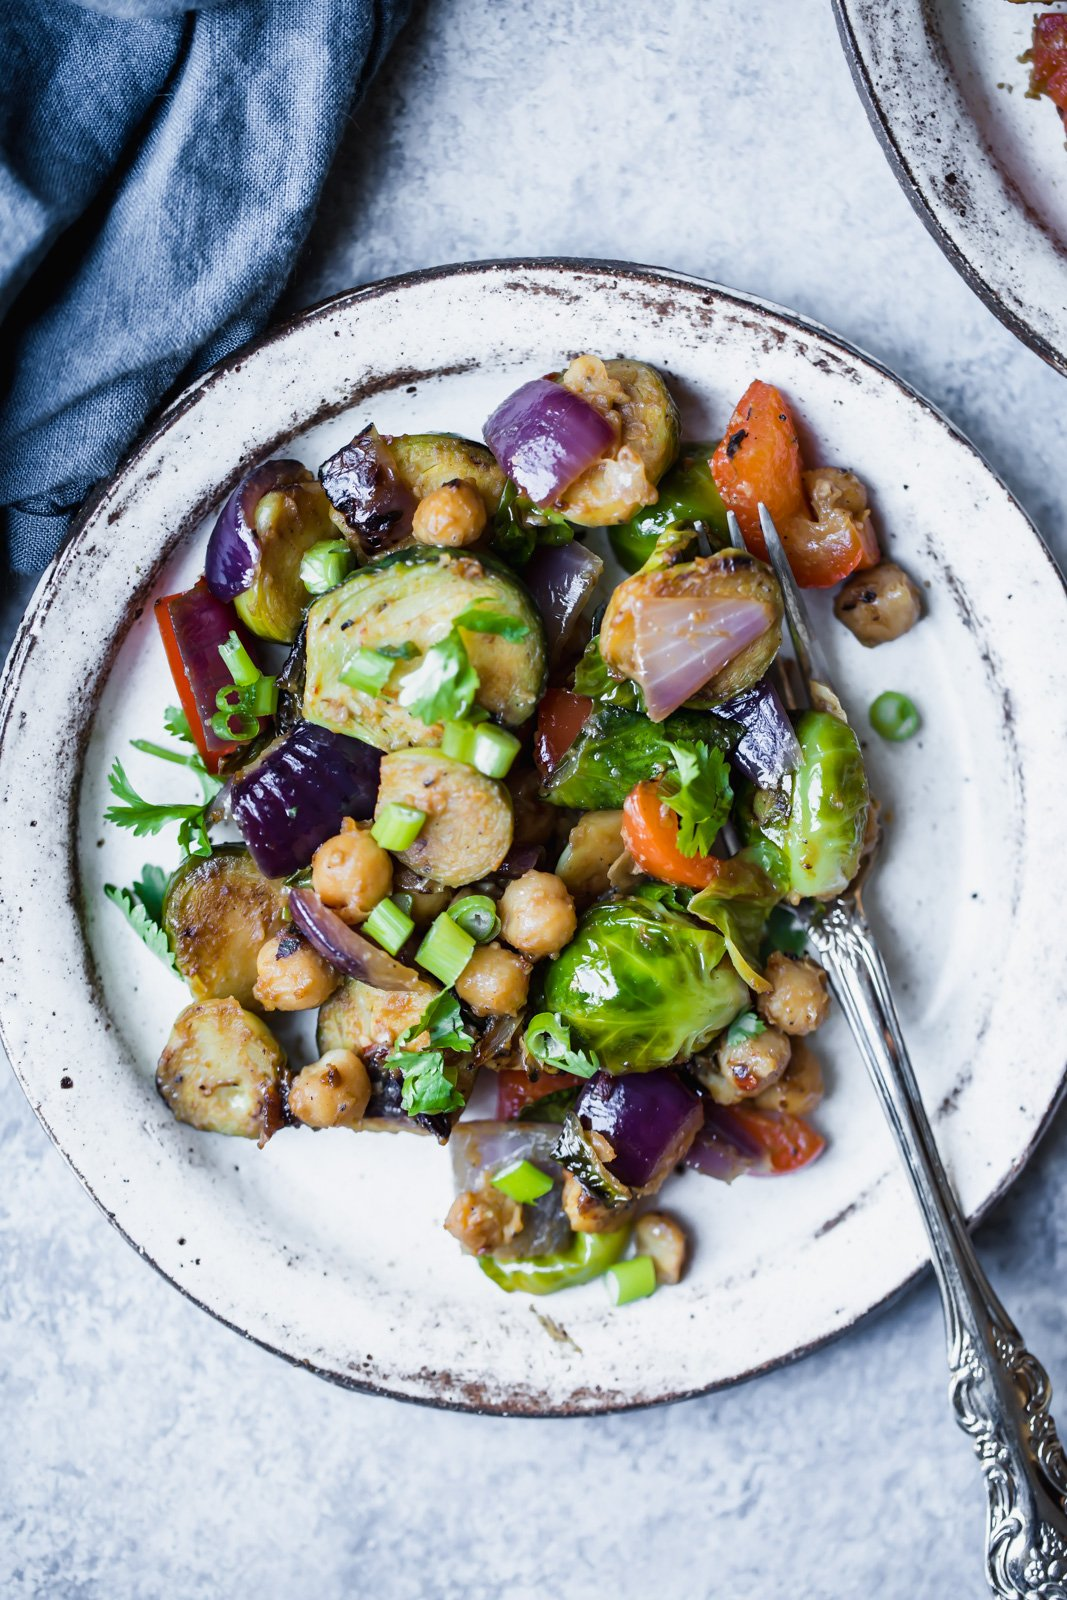 kung pao chickpea and brussels sprouts stir fry on a plate